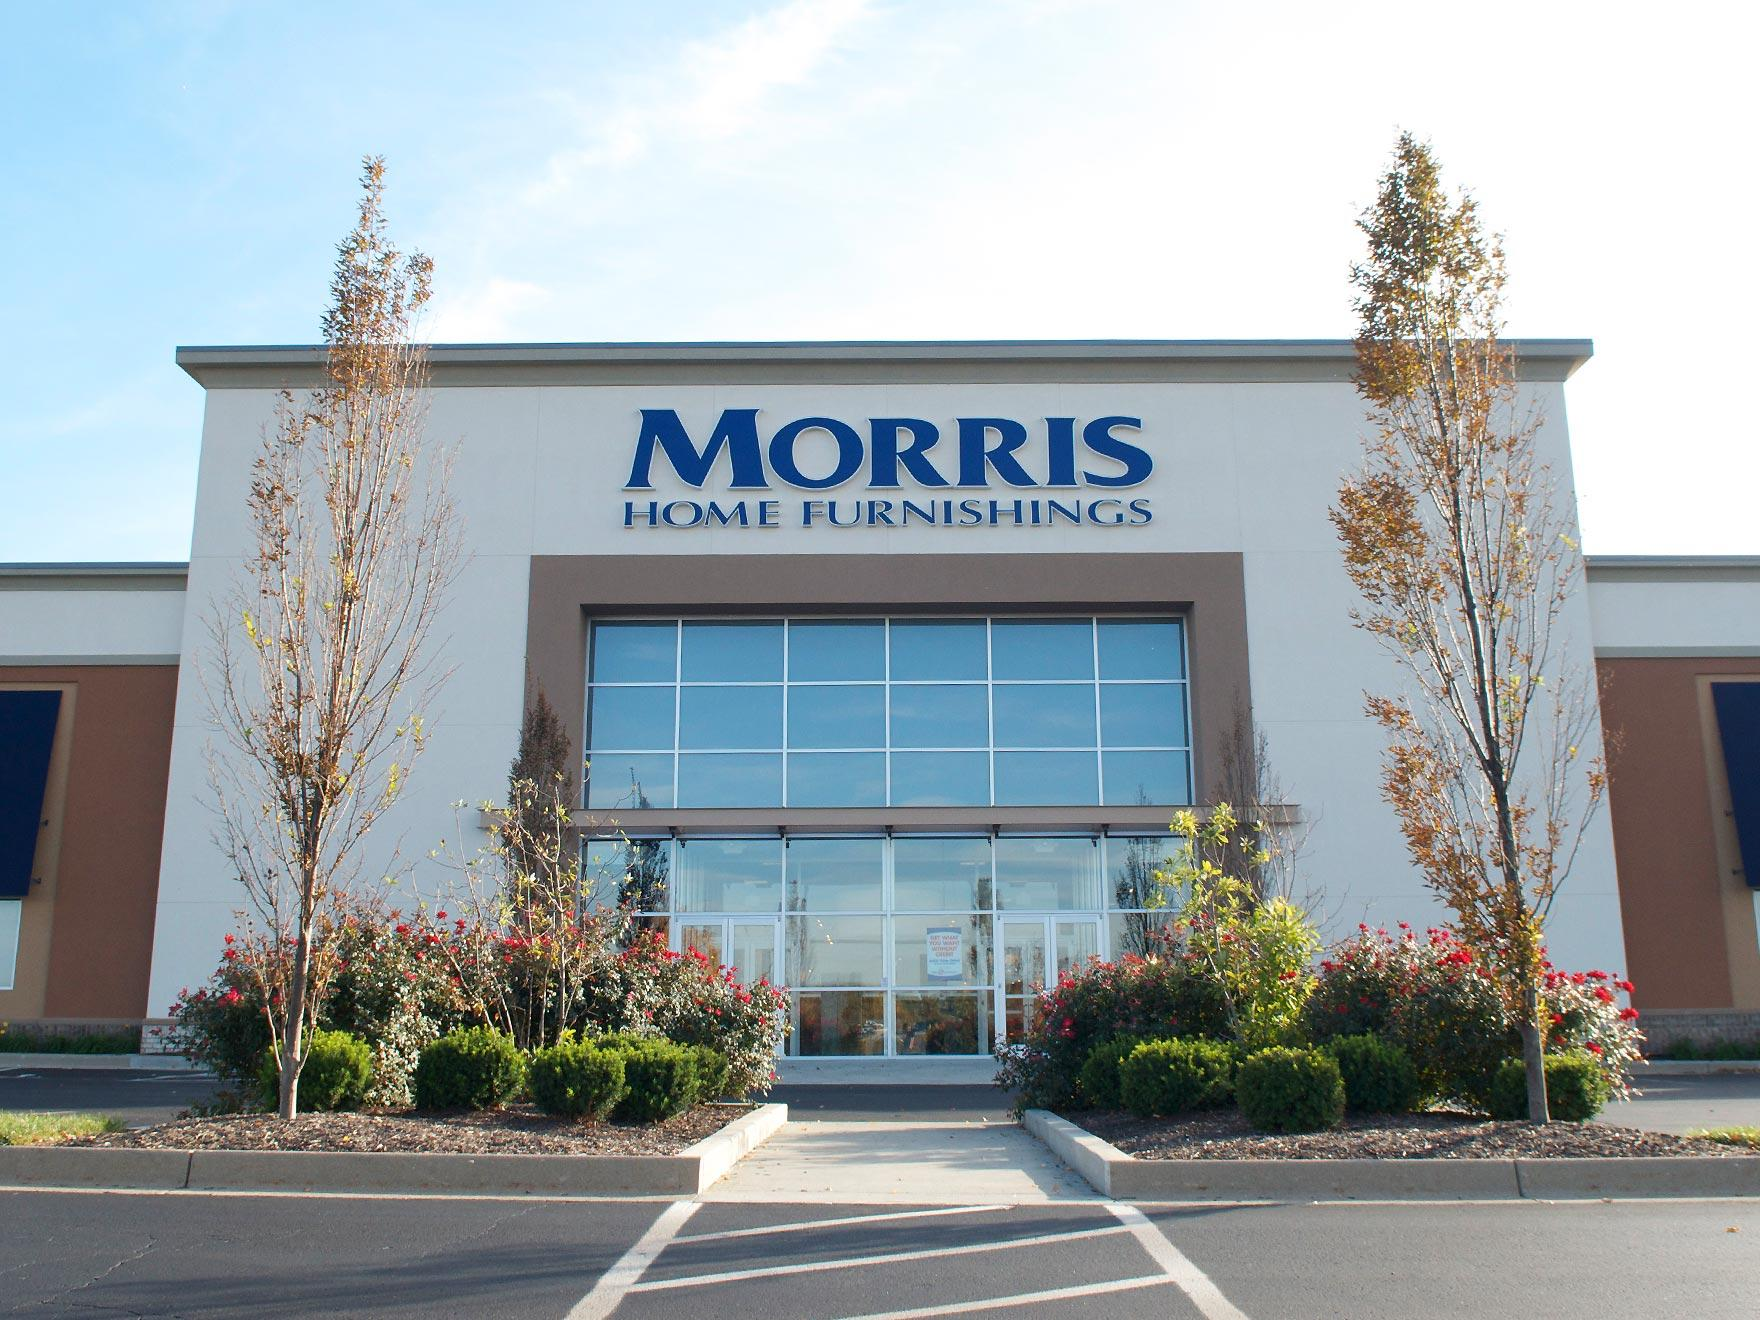 Morris Home Furnishings